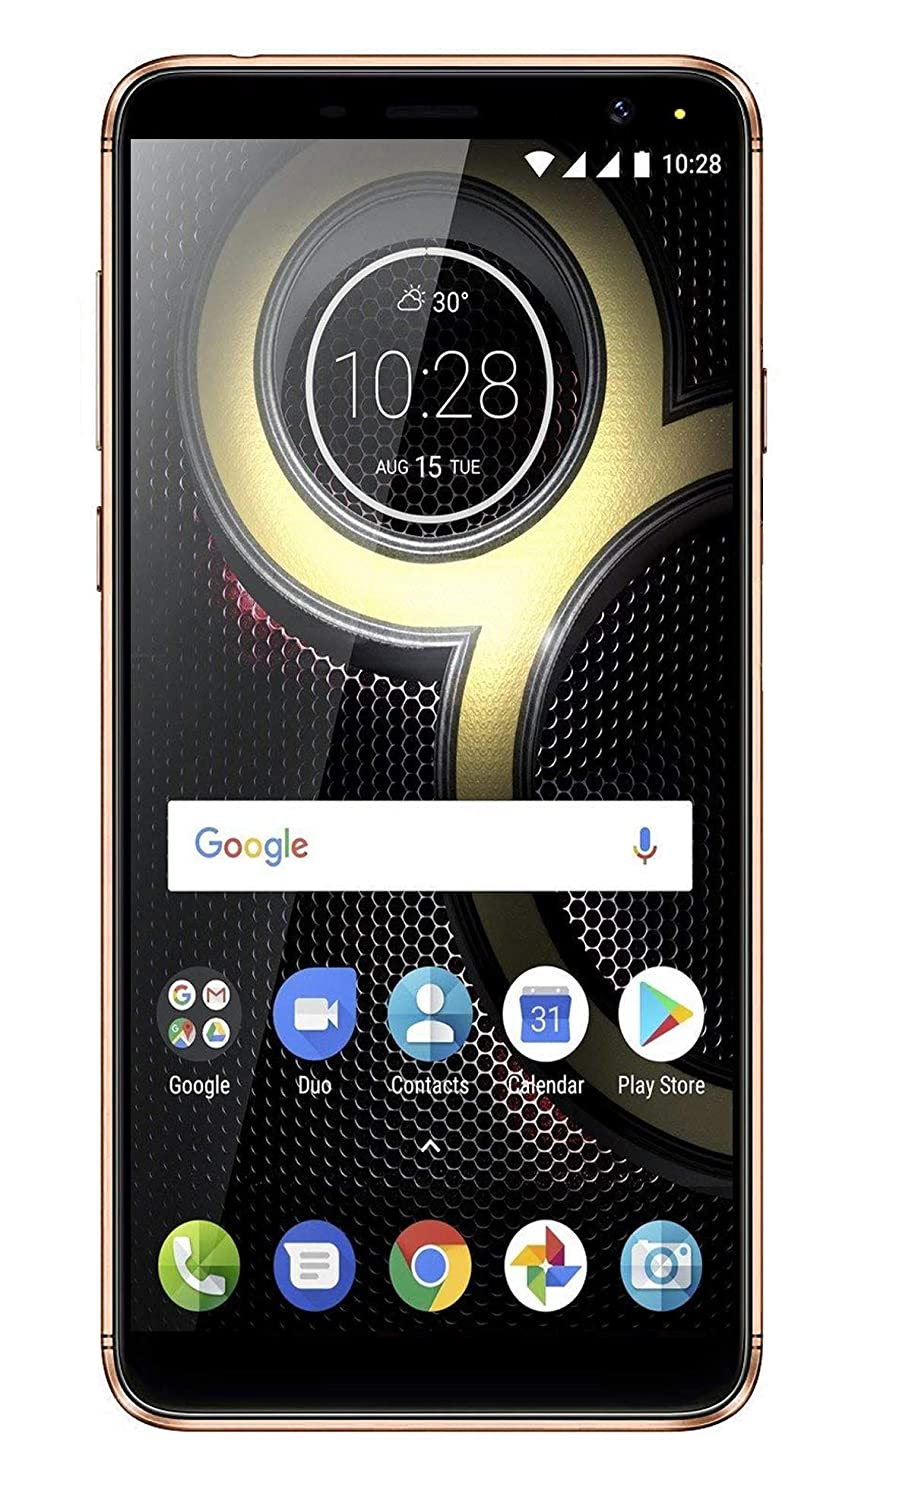 Tennzo Model T1 4G Volte with 2 GB RAM Model with 5.5-inch 1080p Display, (Reliance Jio 4G Sim Support) 16 GB Internal Memory and 8 Mpix /5 Mpix Camera HD Smartphone in Golden